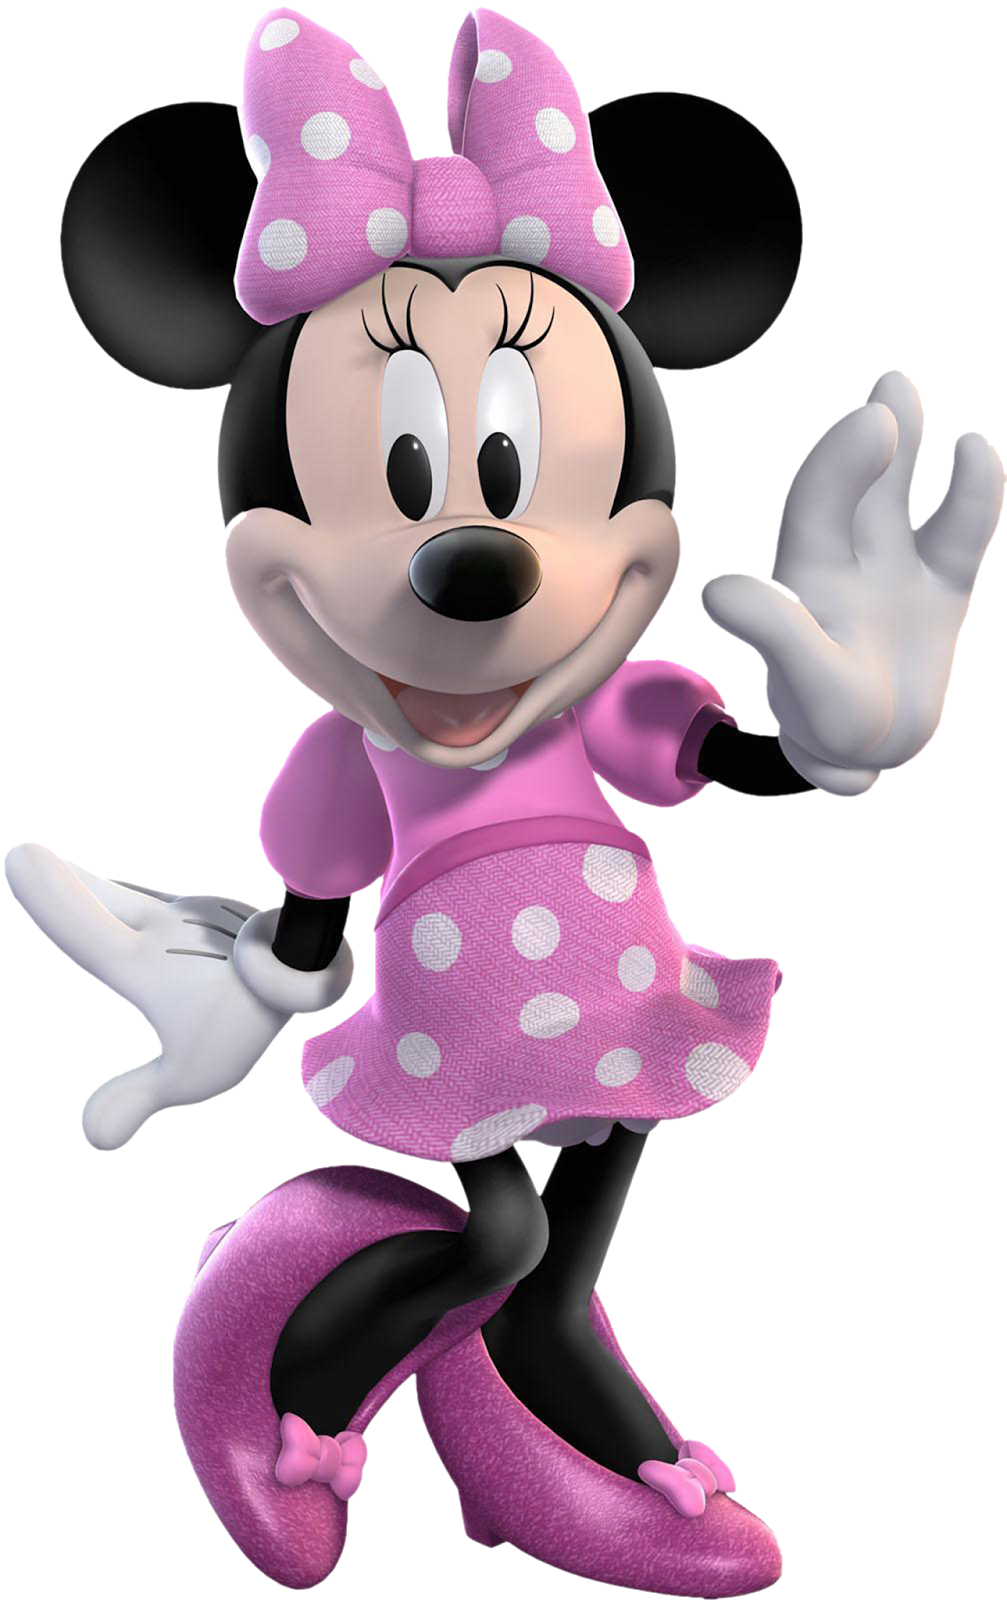 Minnie mouse png. Transparent images all free